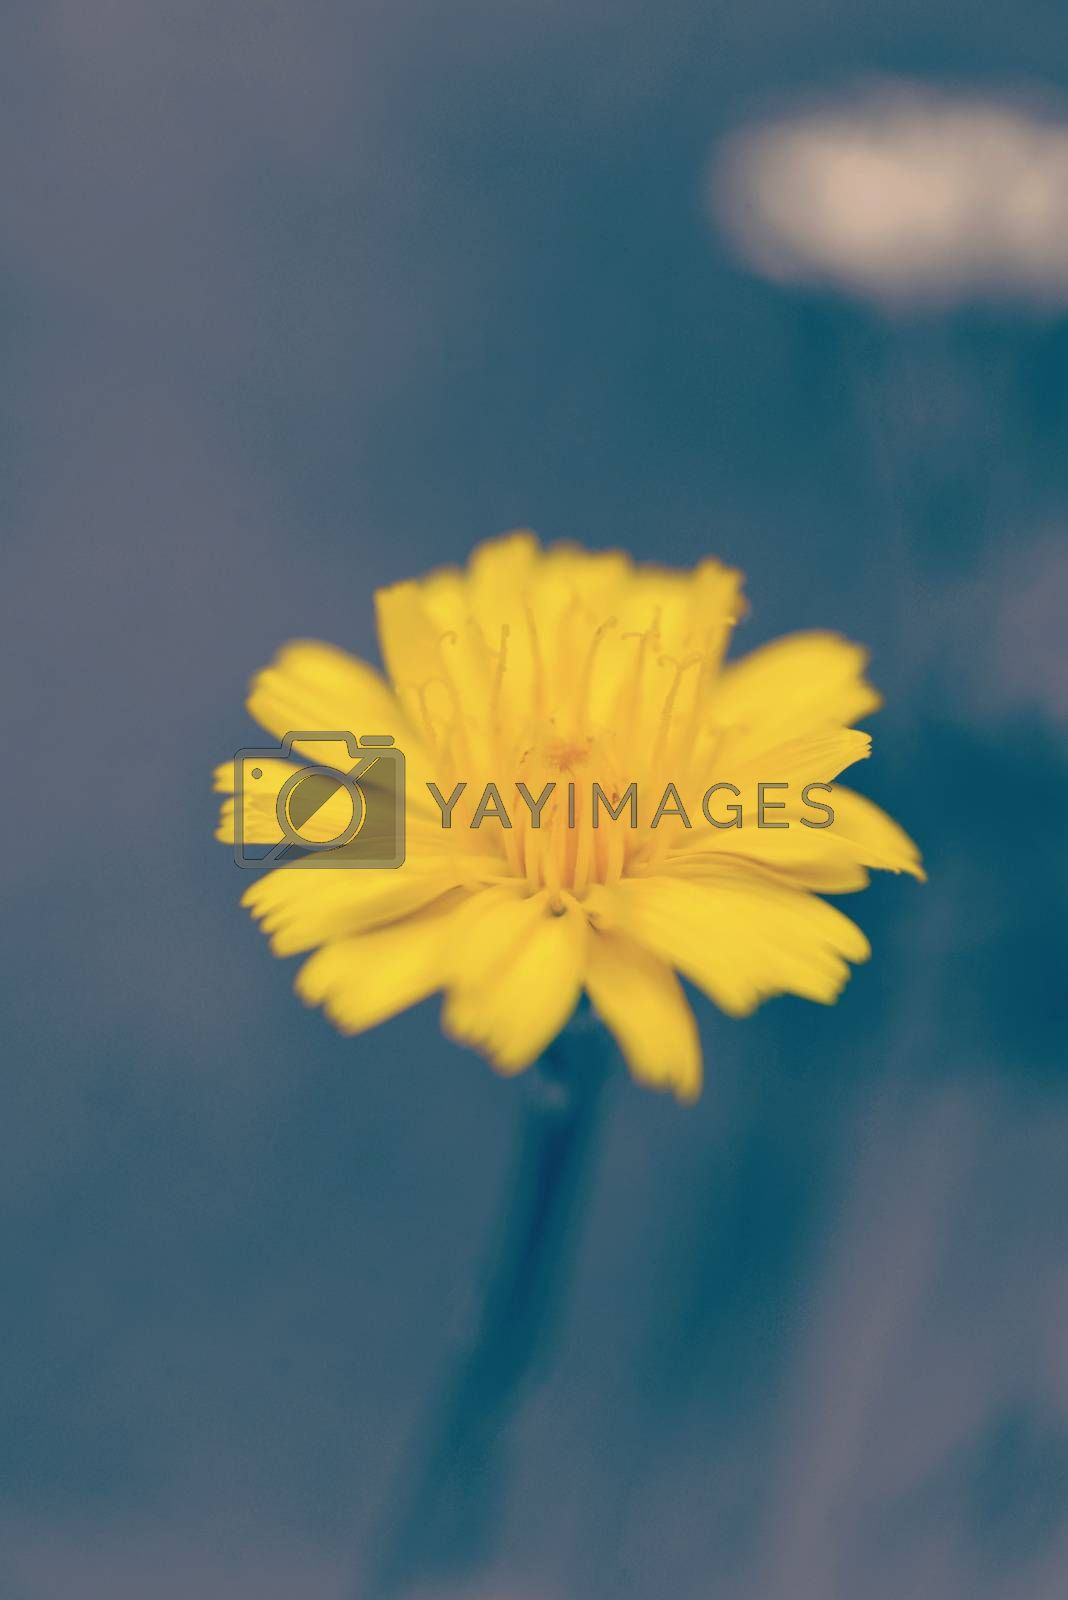 Bright yellow flower on blur background with vintage filter effect.